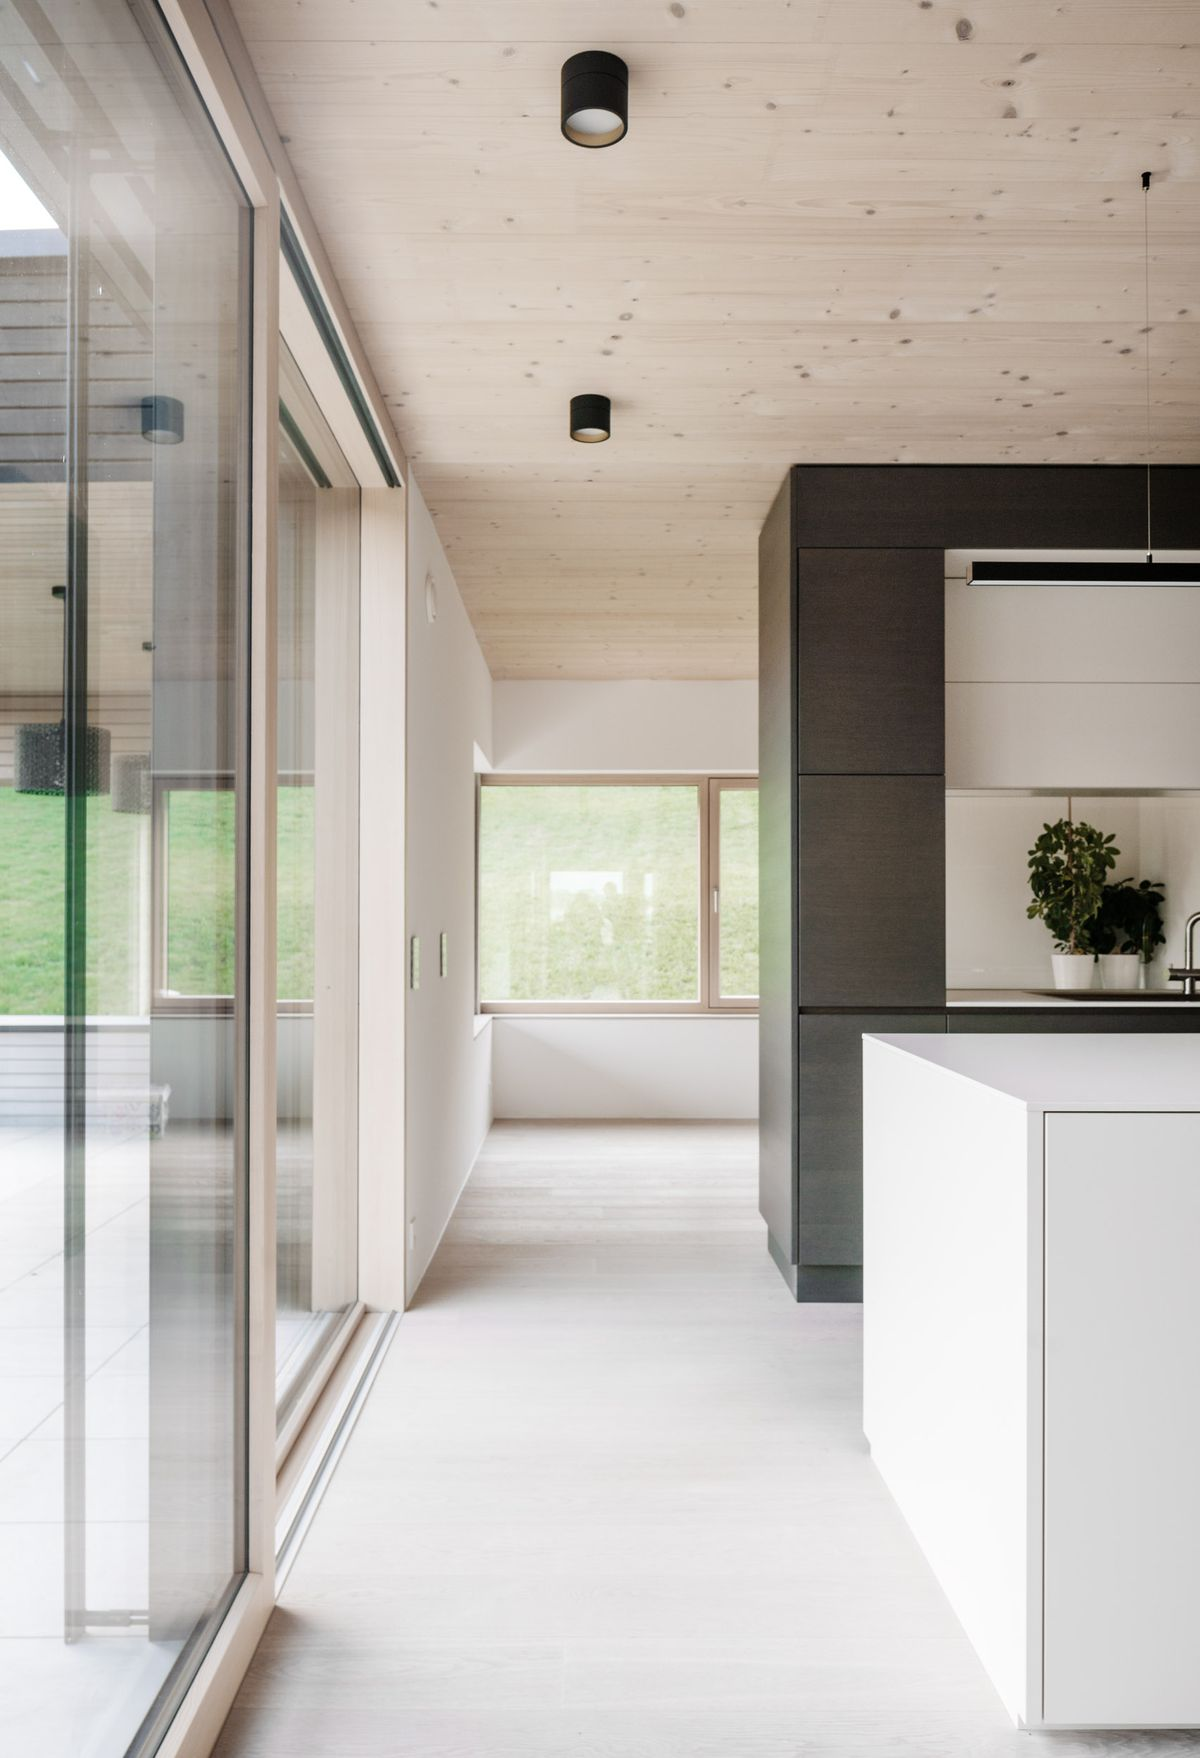 Hallway in brightly lit home with sliding glass walls.